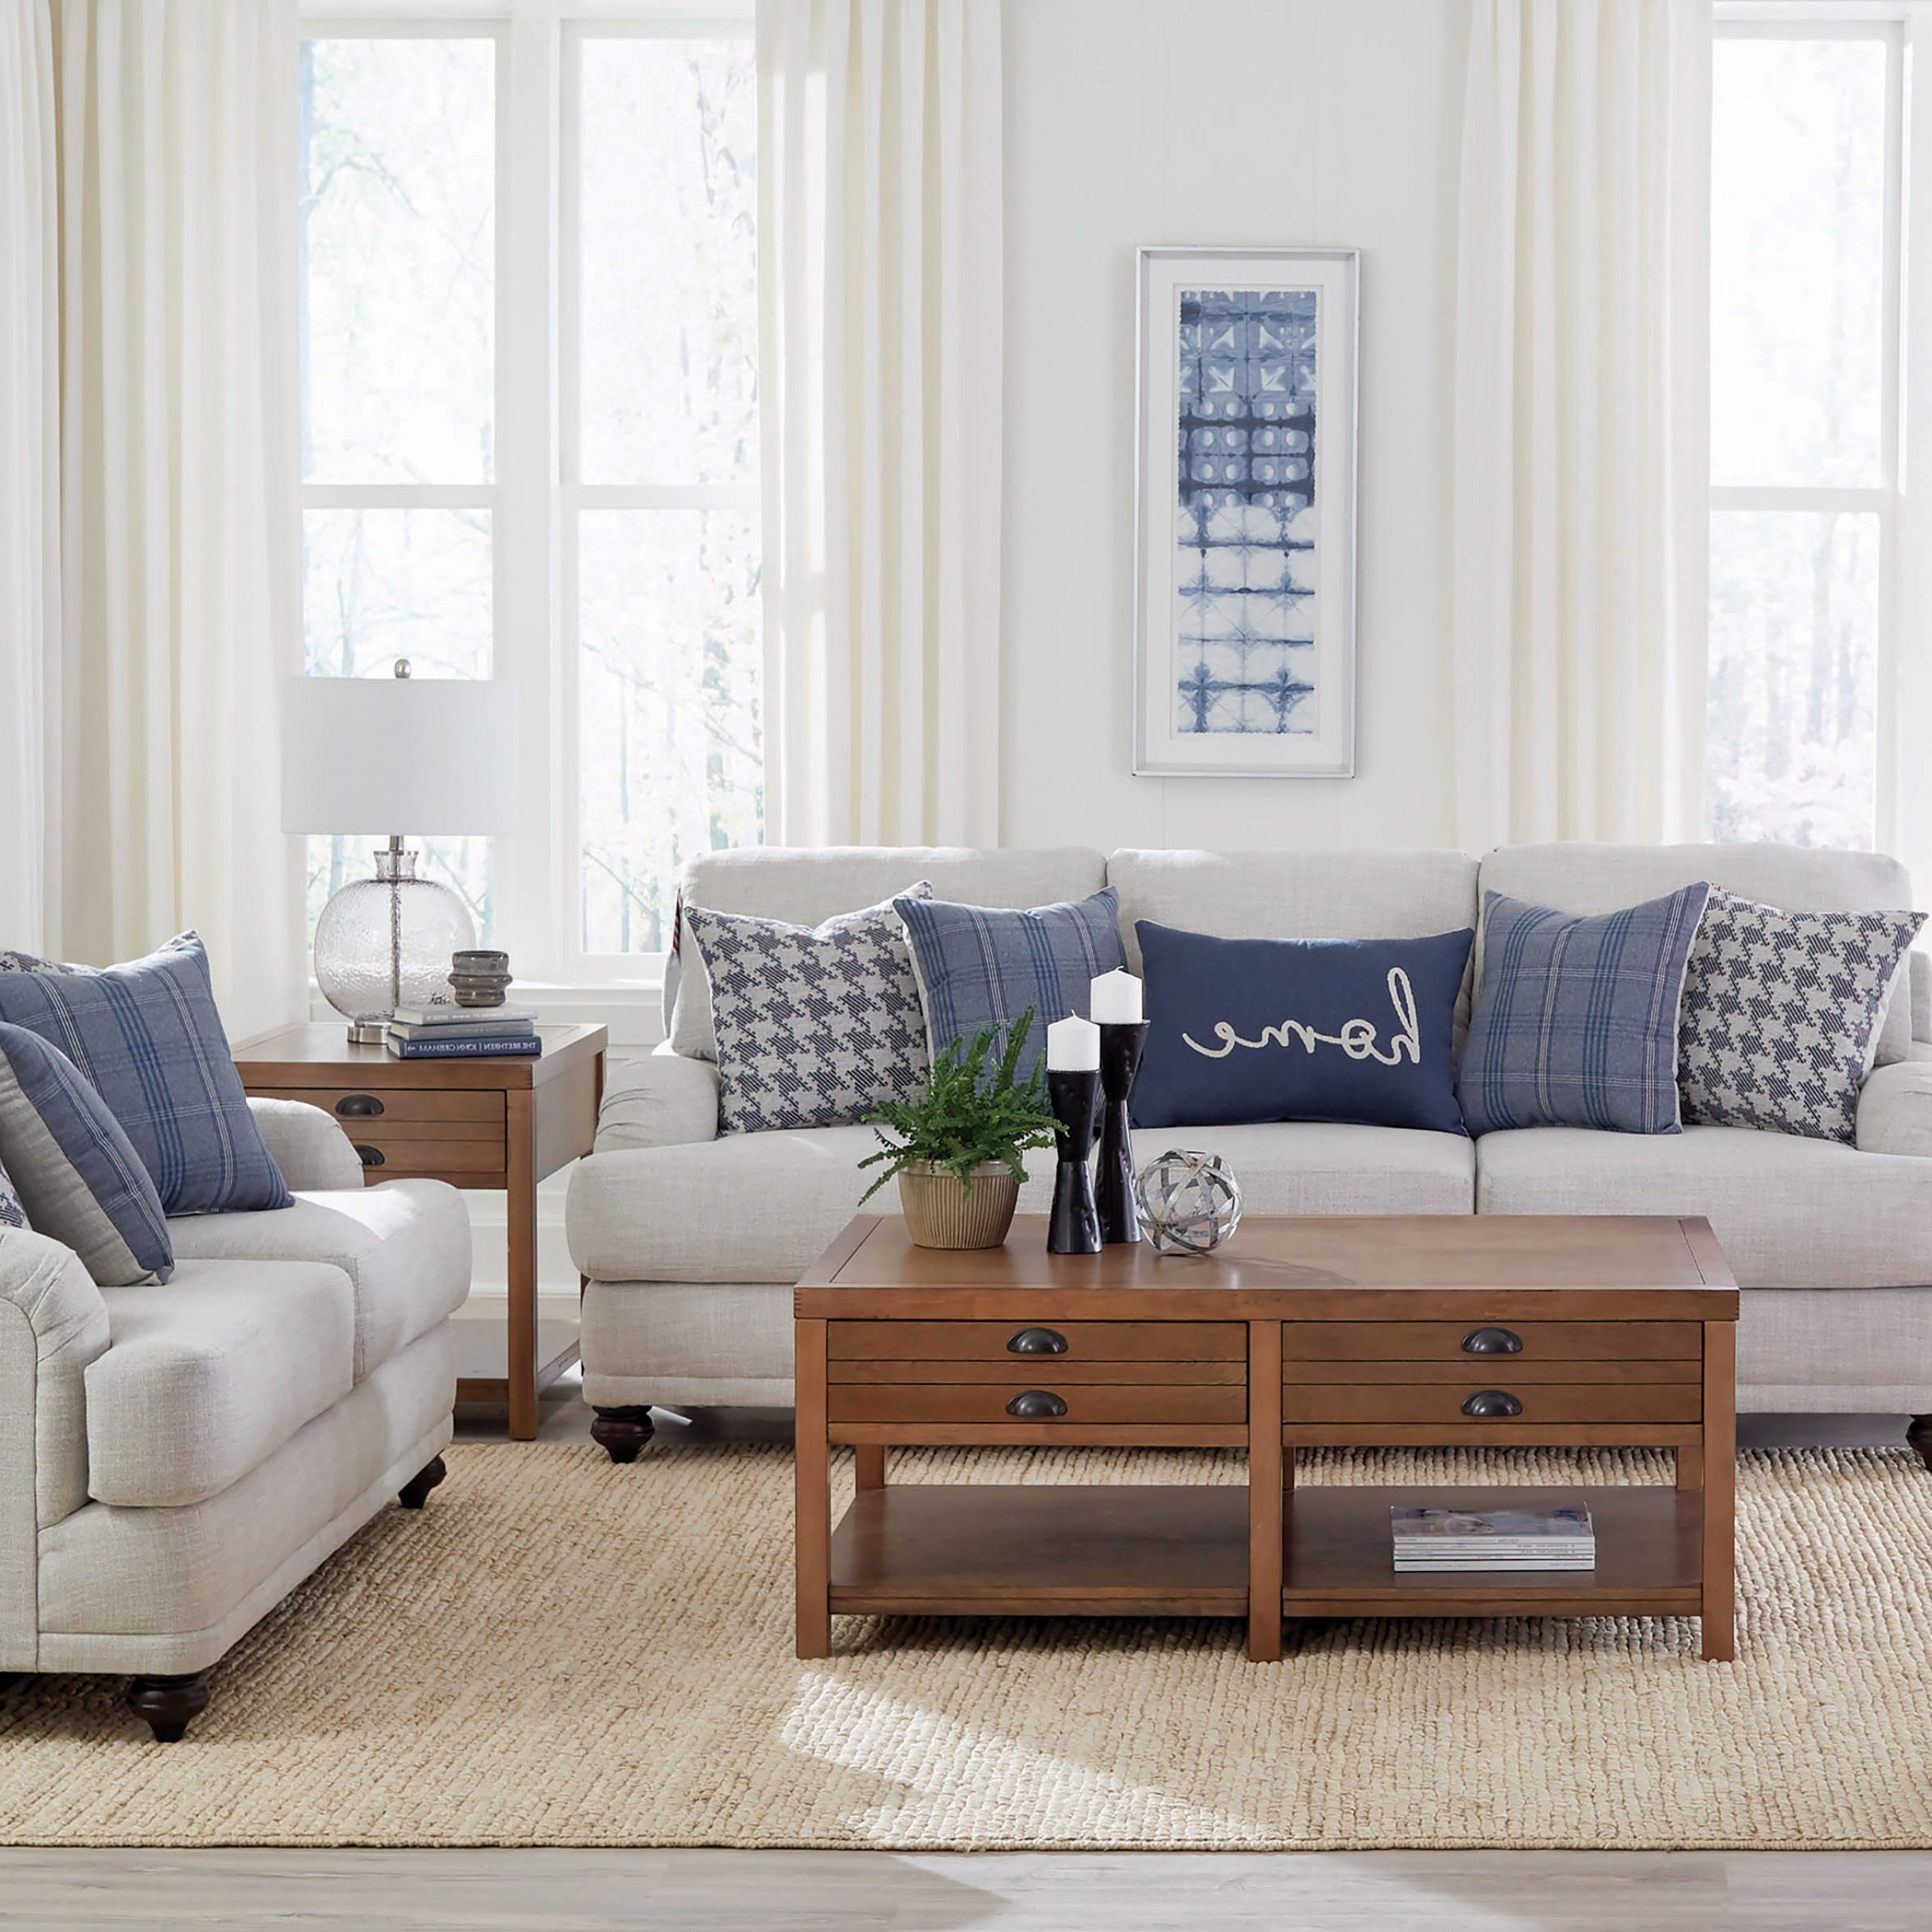 Molnar Upholstered Sectional Sofas Blue/Gray Regarding Most Current Gwen Recessed Arms Sofa Light Grey – Coaster Fine Furniture (View 15 of 25)